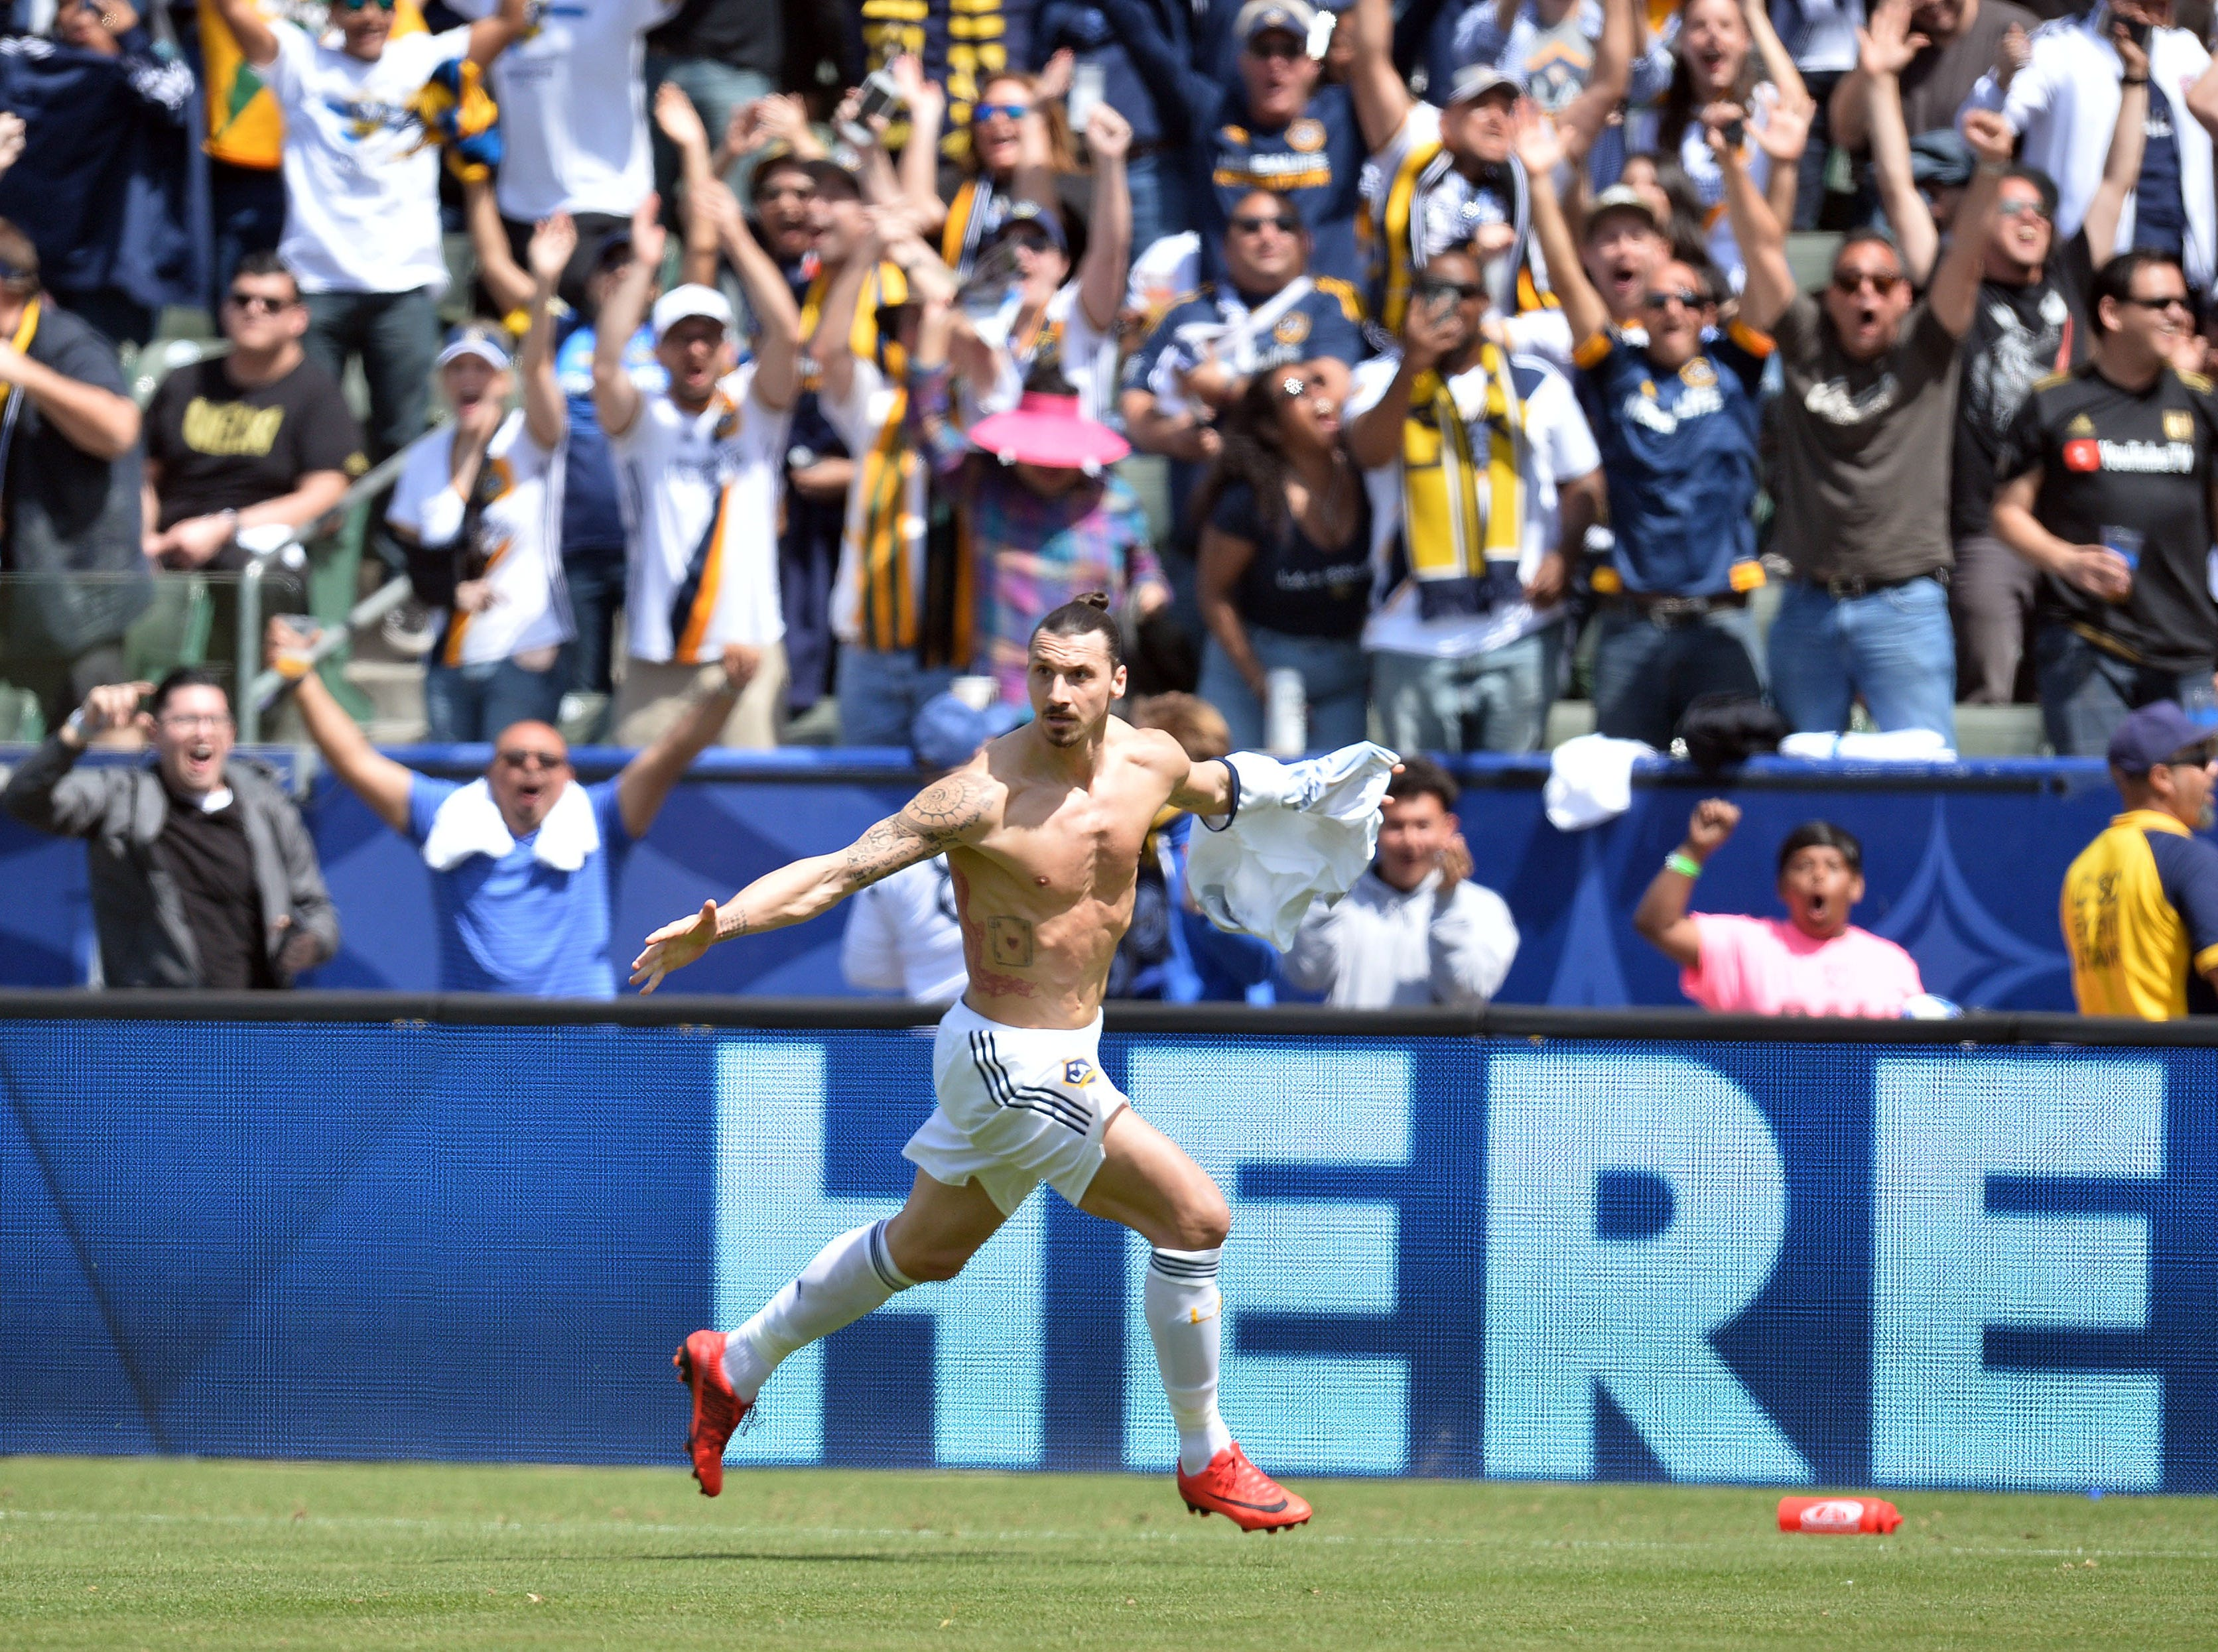 March 31: Los Angeles Galaxy forward Zlatan Ibrahimovic (9) celebrates his incredible goal against LAFC.